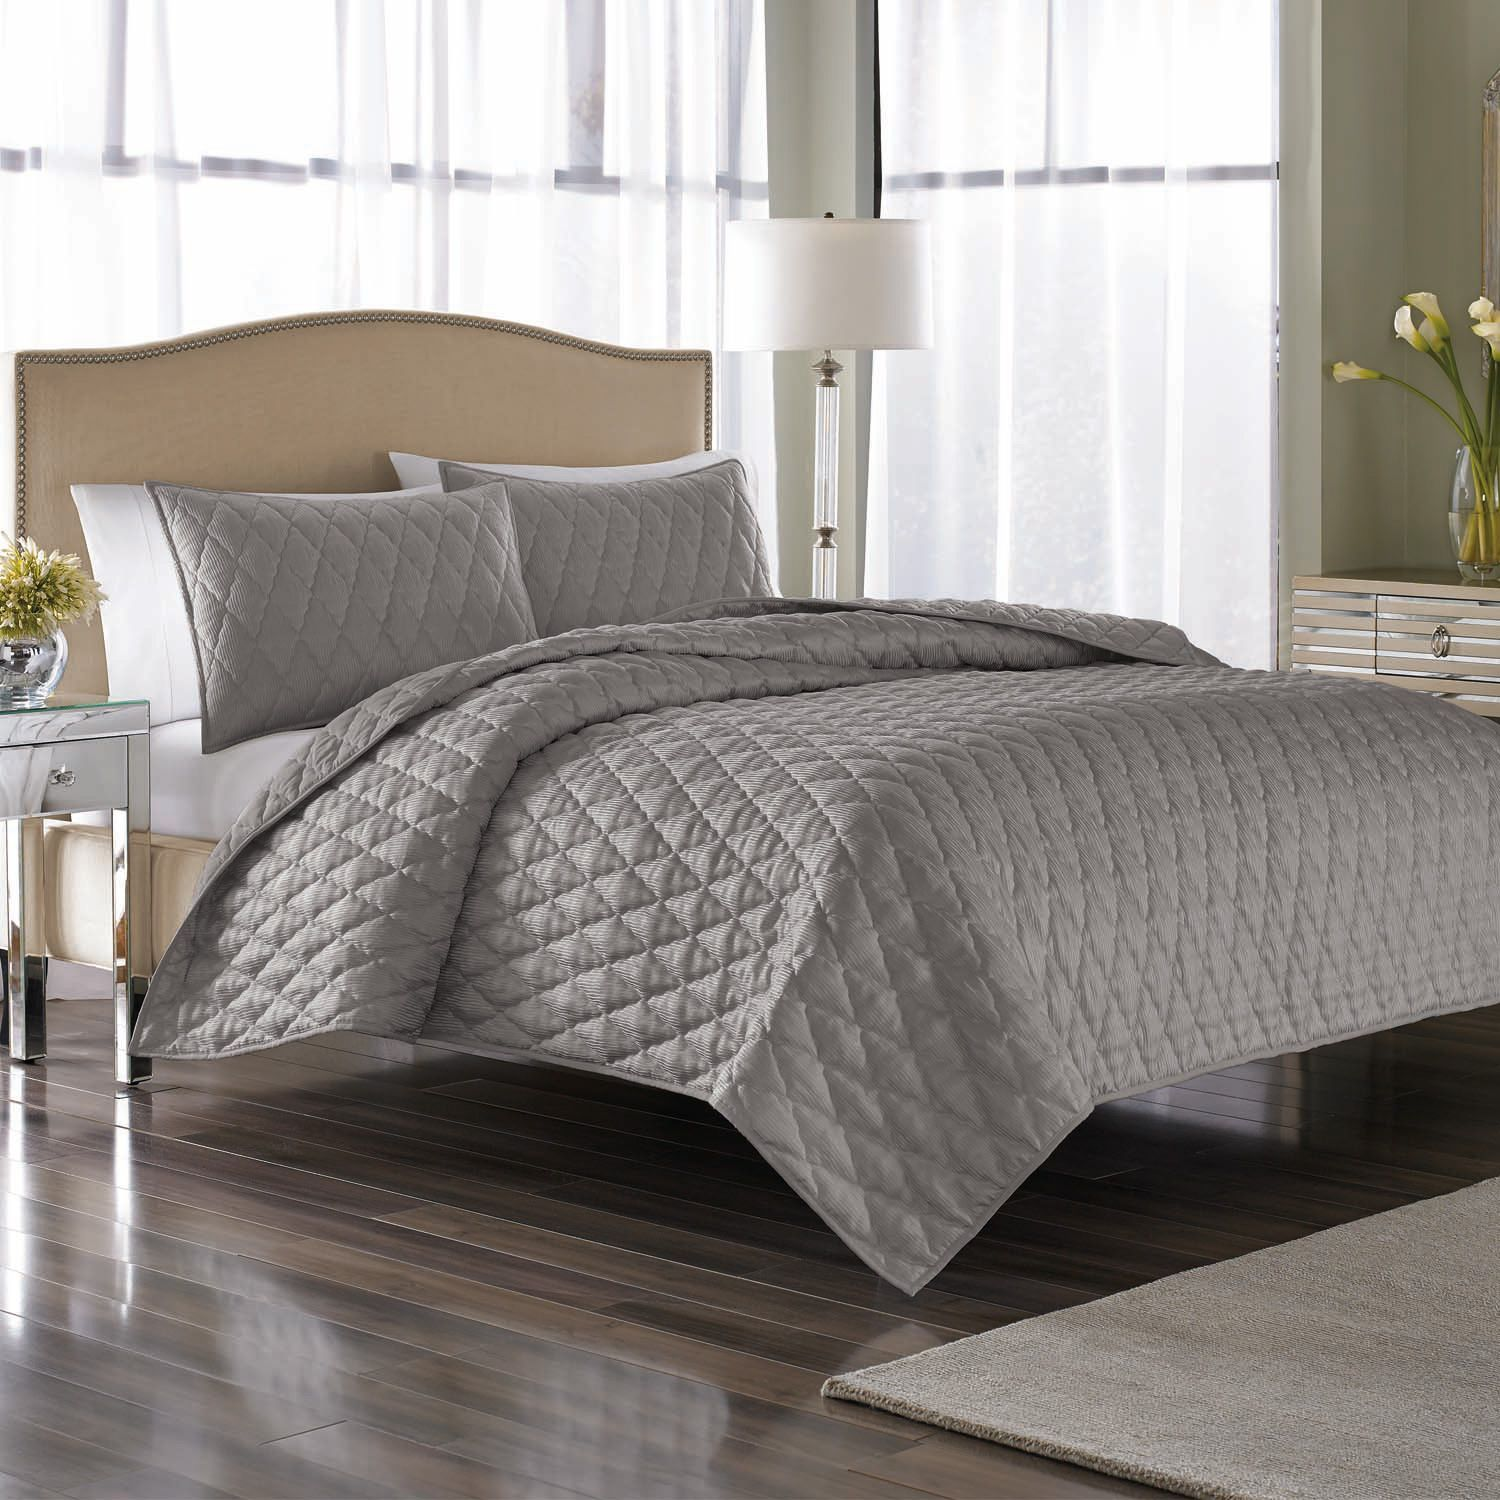 Nicole Miller Serenity Coverlet Set King 3 Pc Set Coverlet Set Miller Homes Coverlets